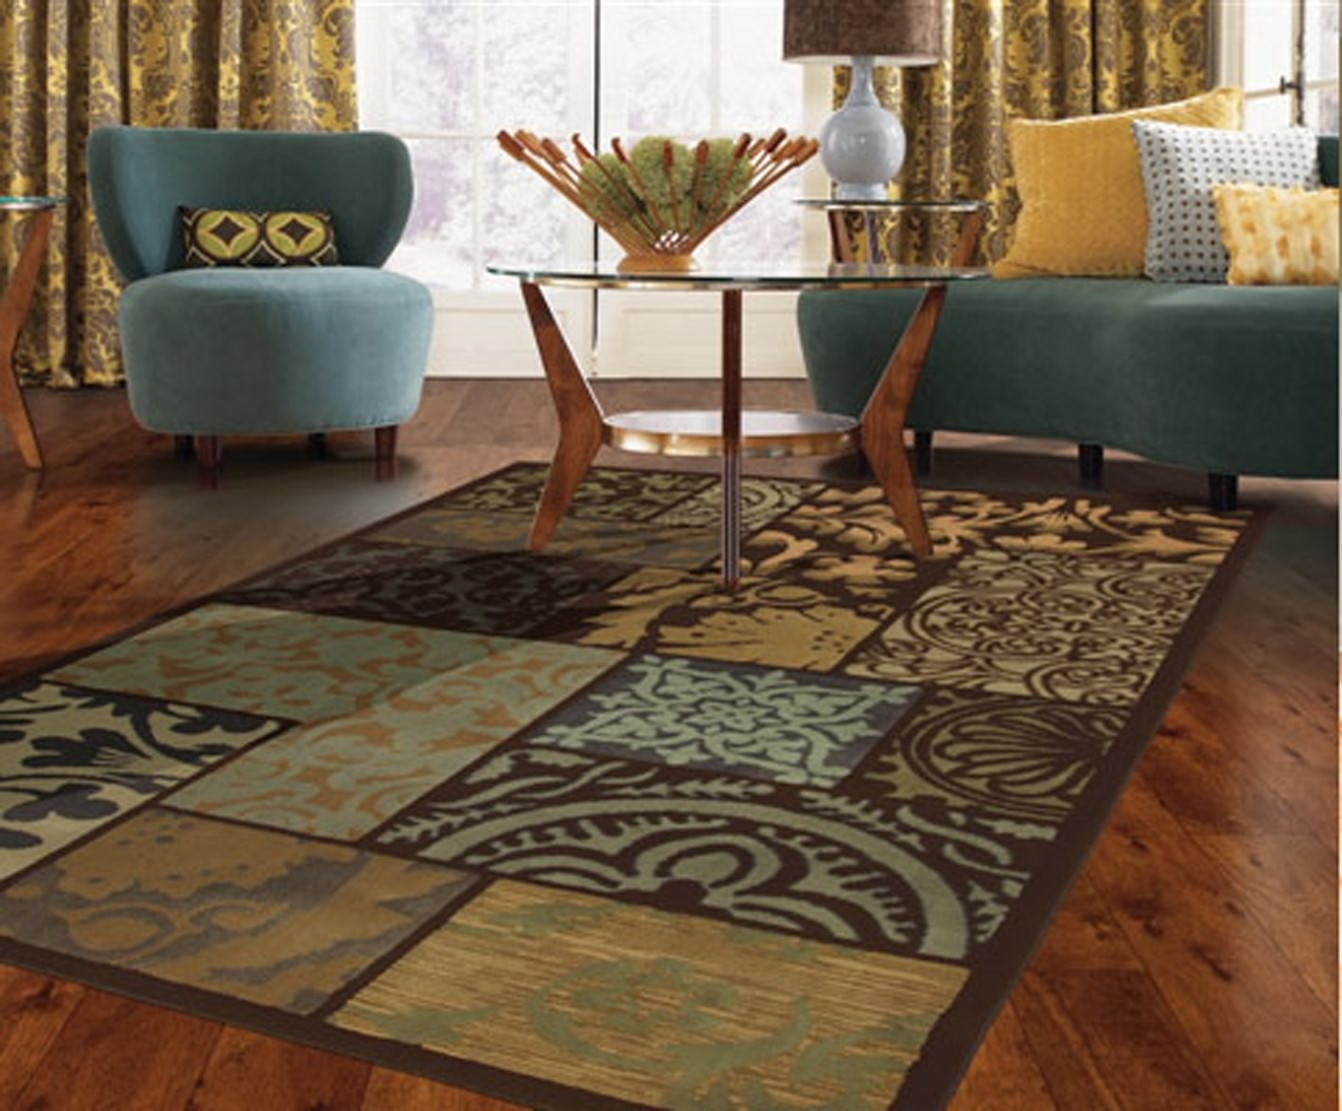 Rug Rugs Under 50 8×10 Area Rug Cheap 8×10 Rugs With Large Floor Rugs (View 13 of 15)